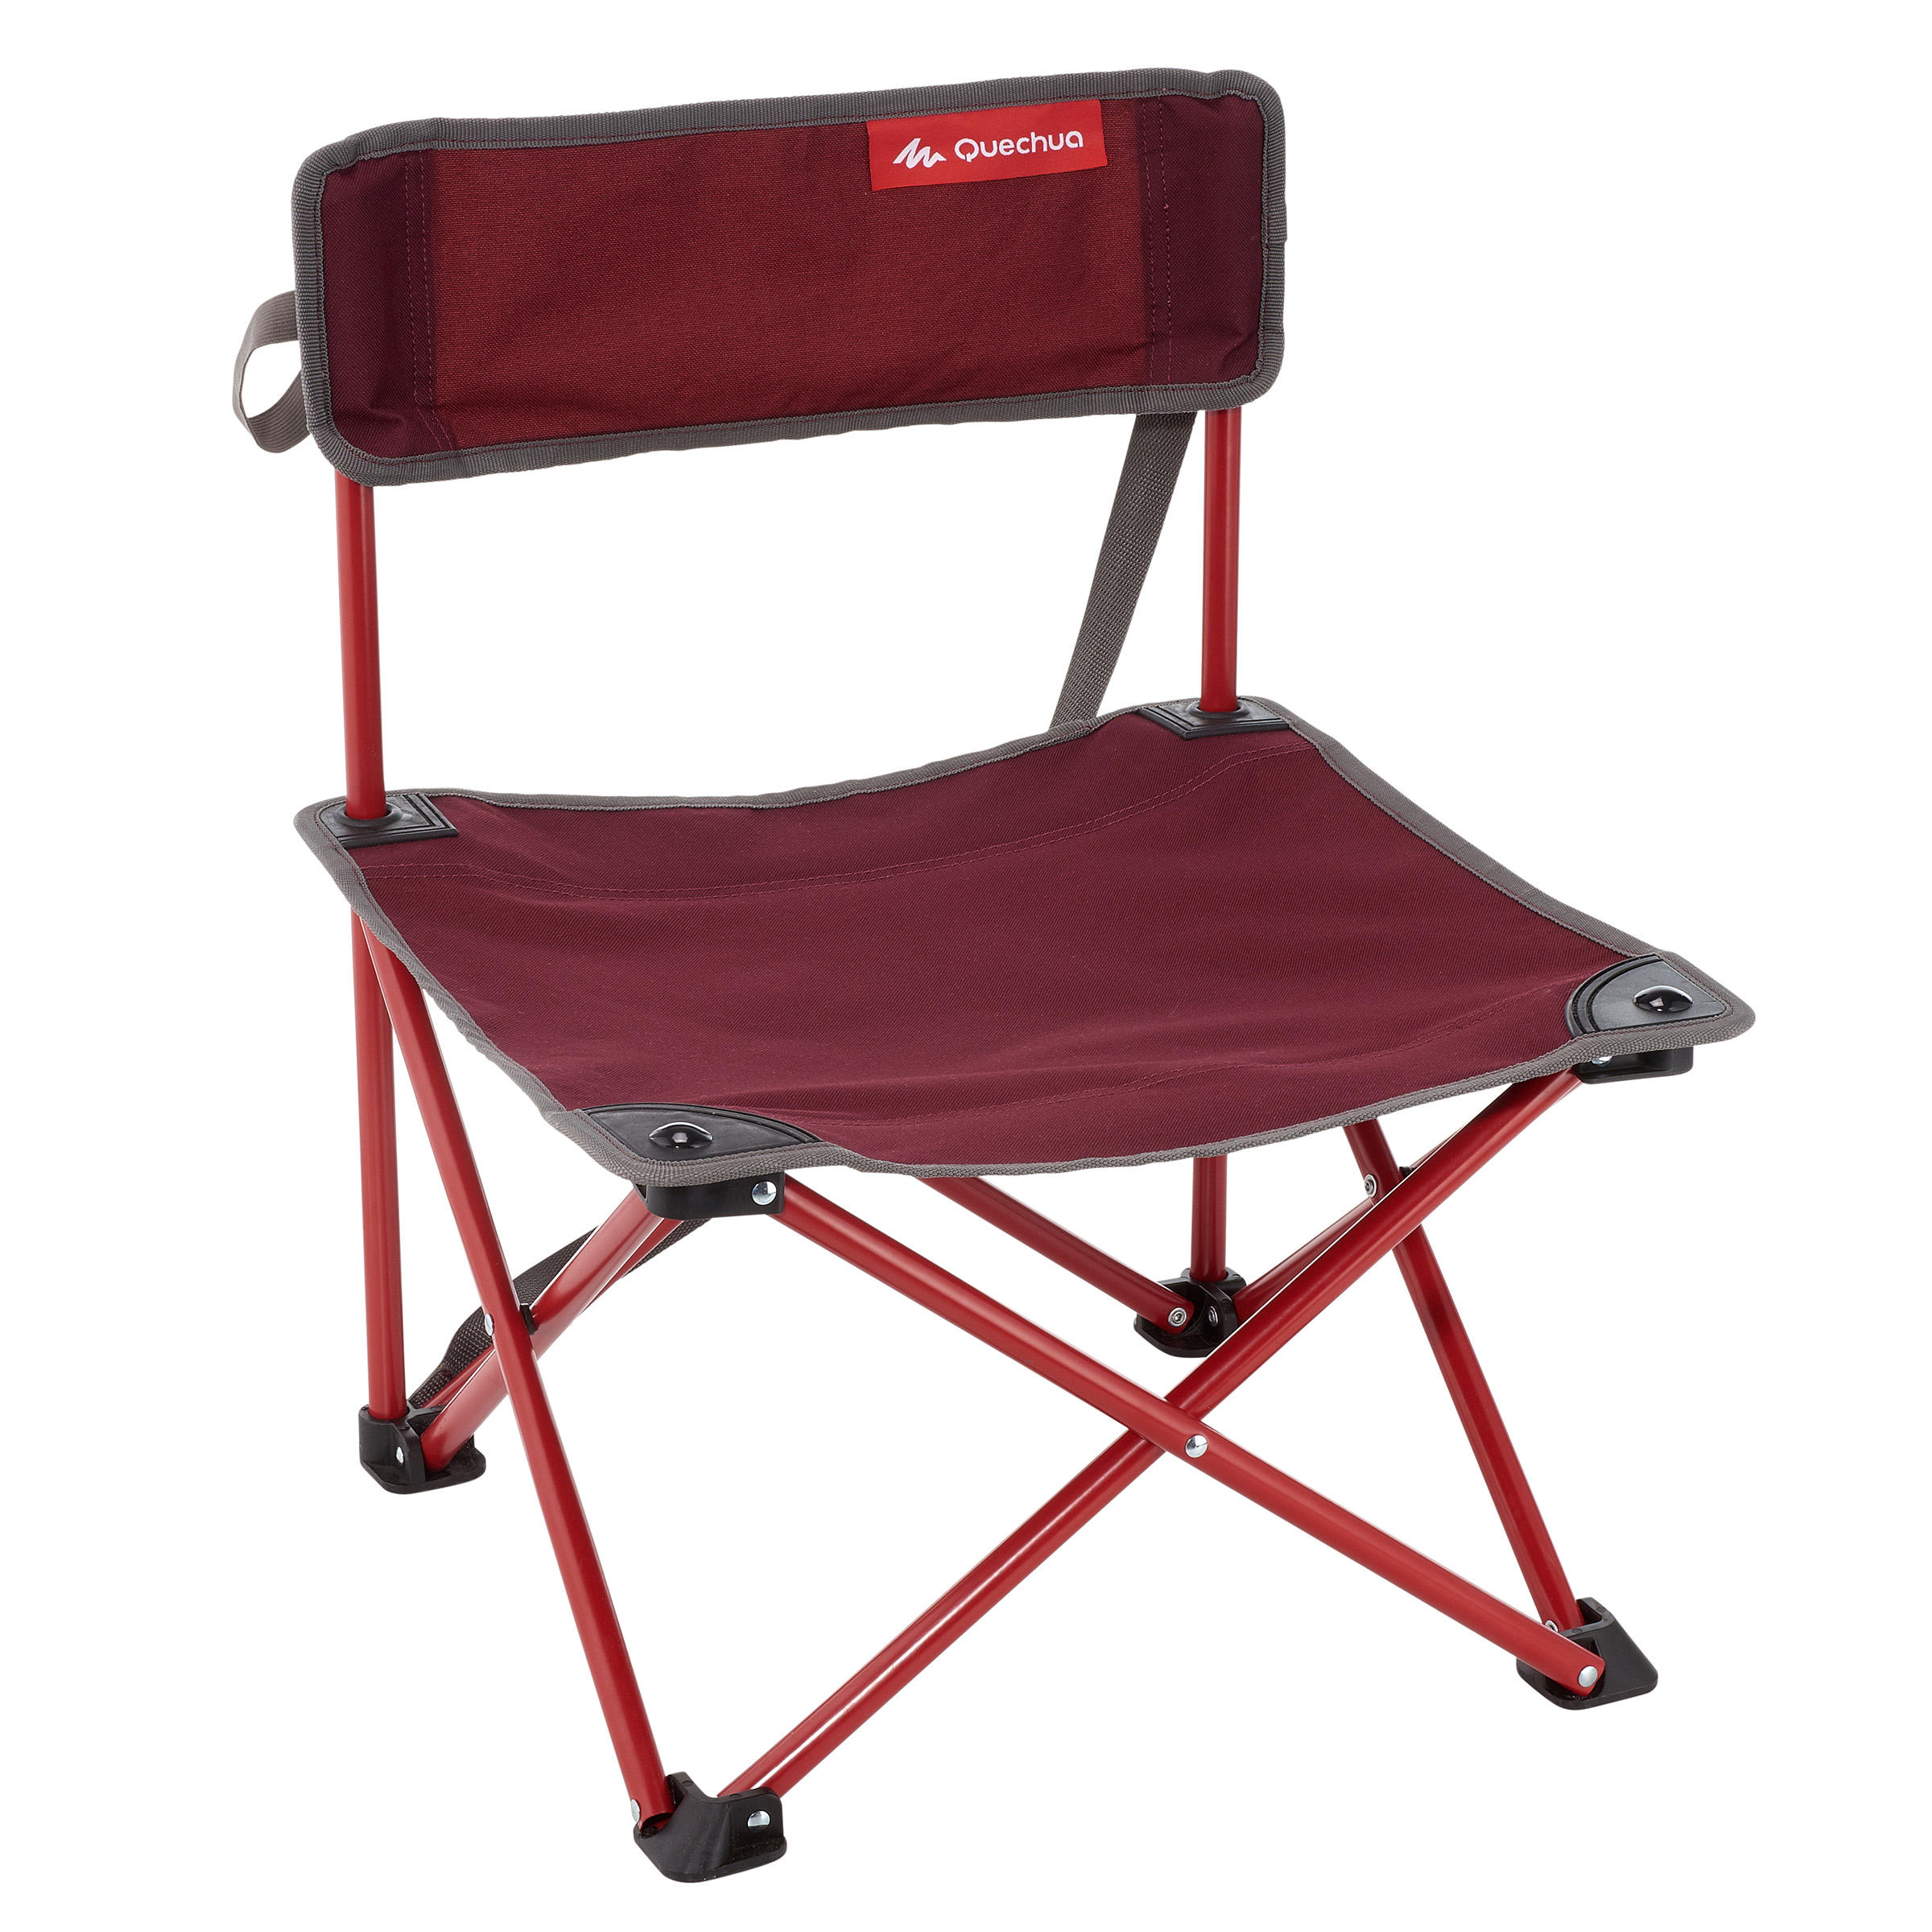 Tabourets Camping Pliants Chaise De Camping Basse